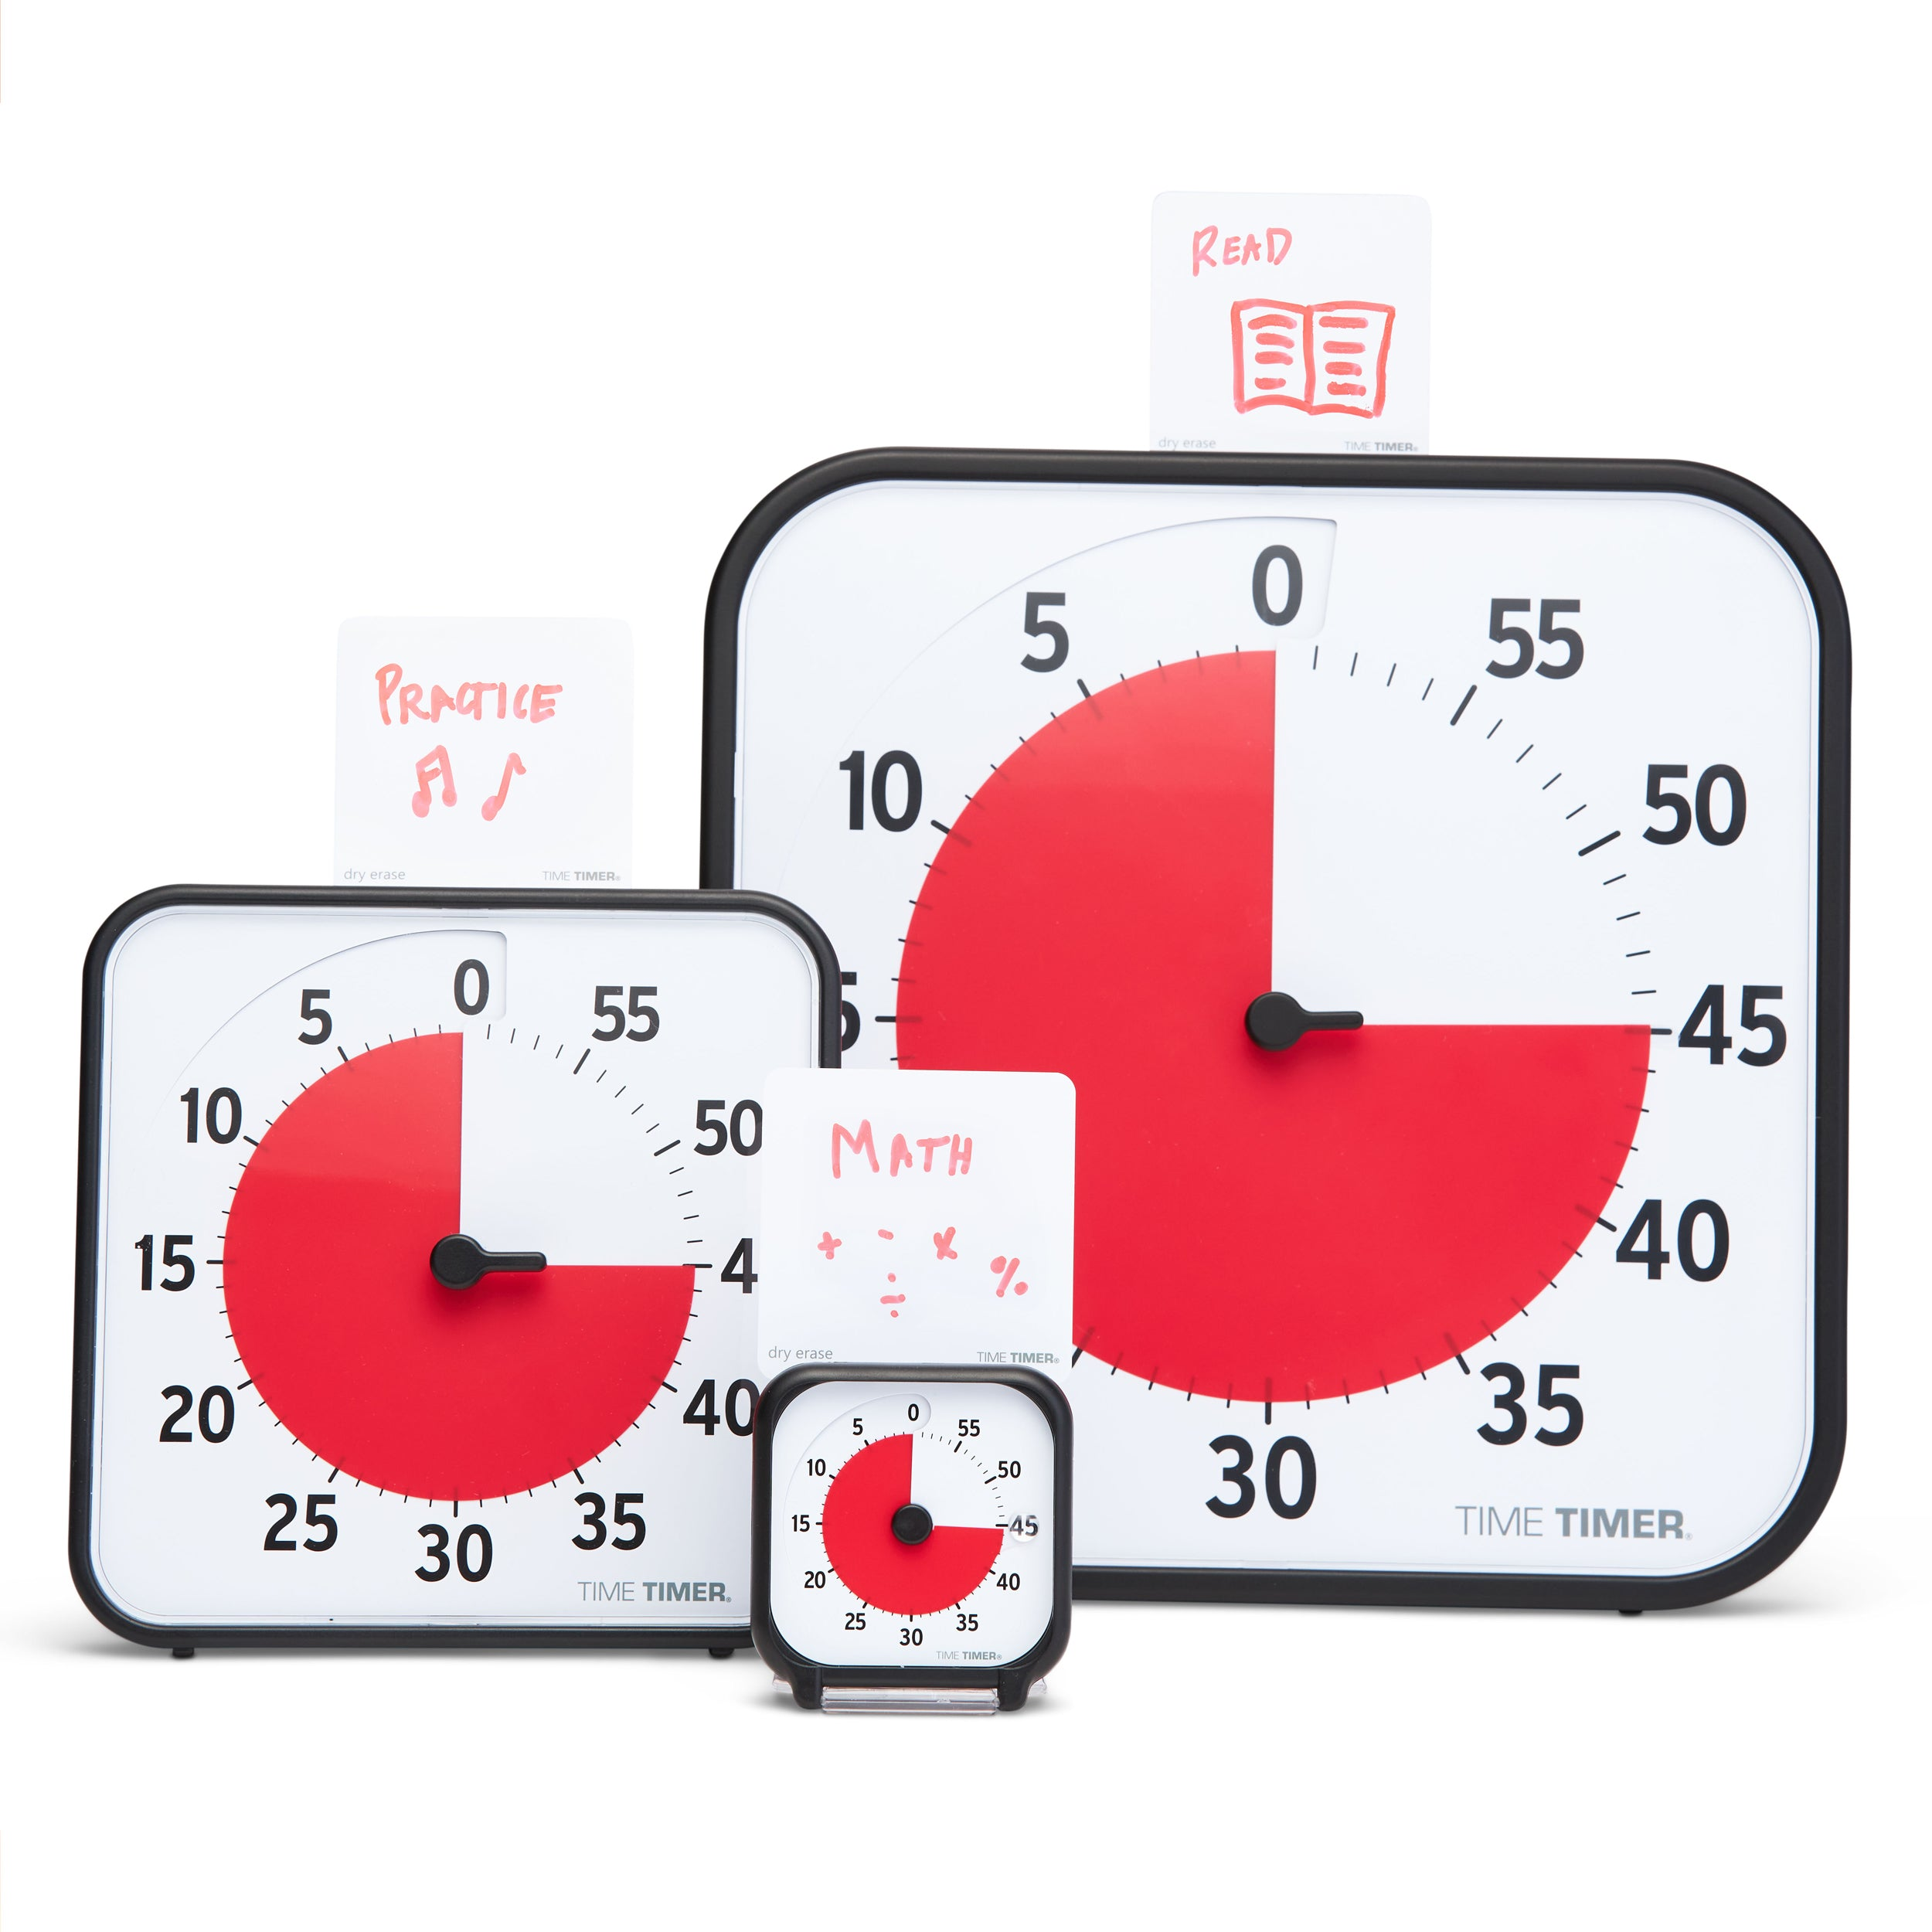 Time Timer Originals Accessory - Extra Dry Erase Activity Cards (Set of 5)